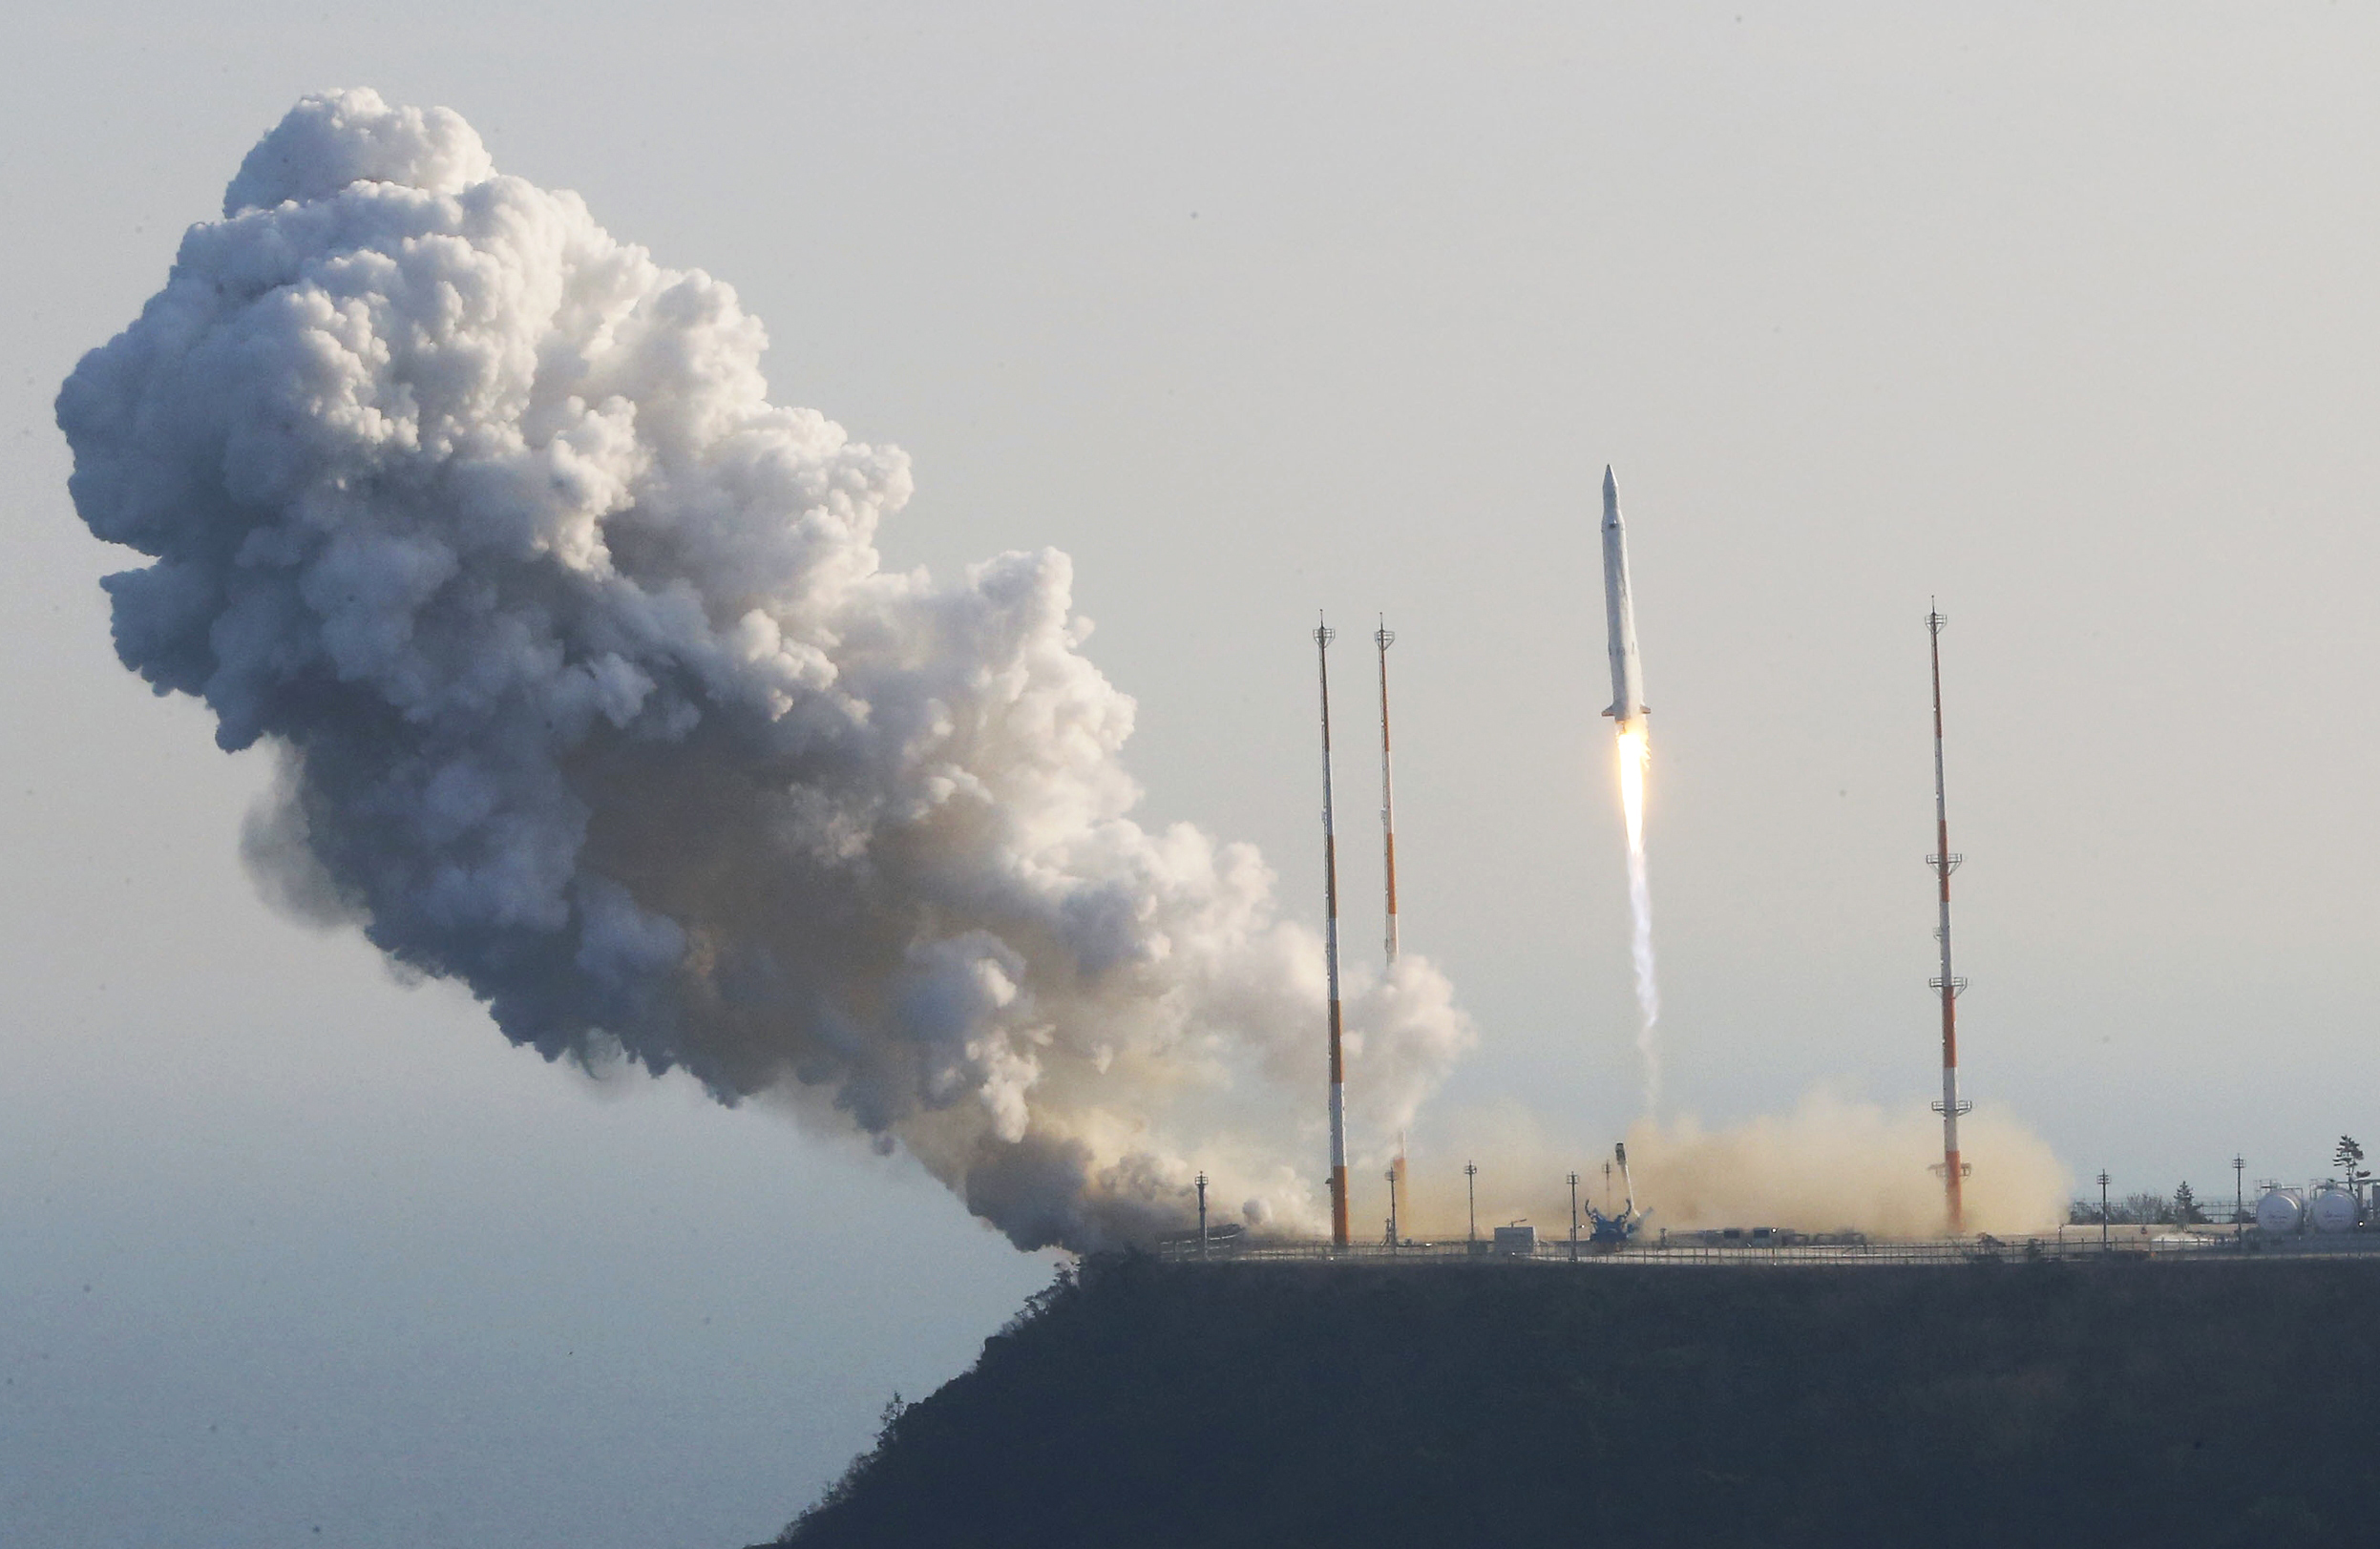 South Korea's rocket takes off from its launch pad at the Naro Space Center in Goheung, South Korea, Wednesday, Jan. 30, 2013.